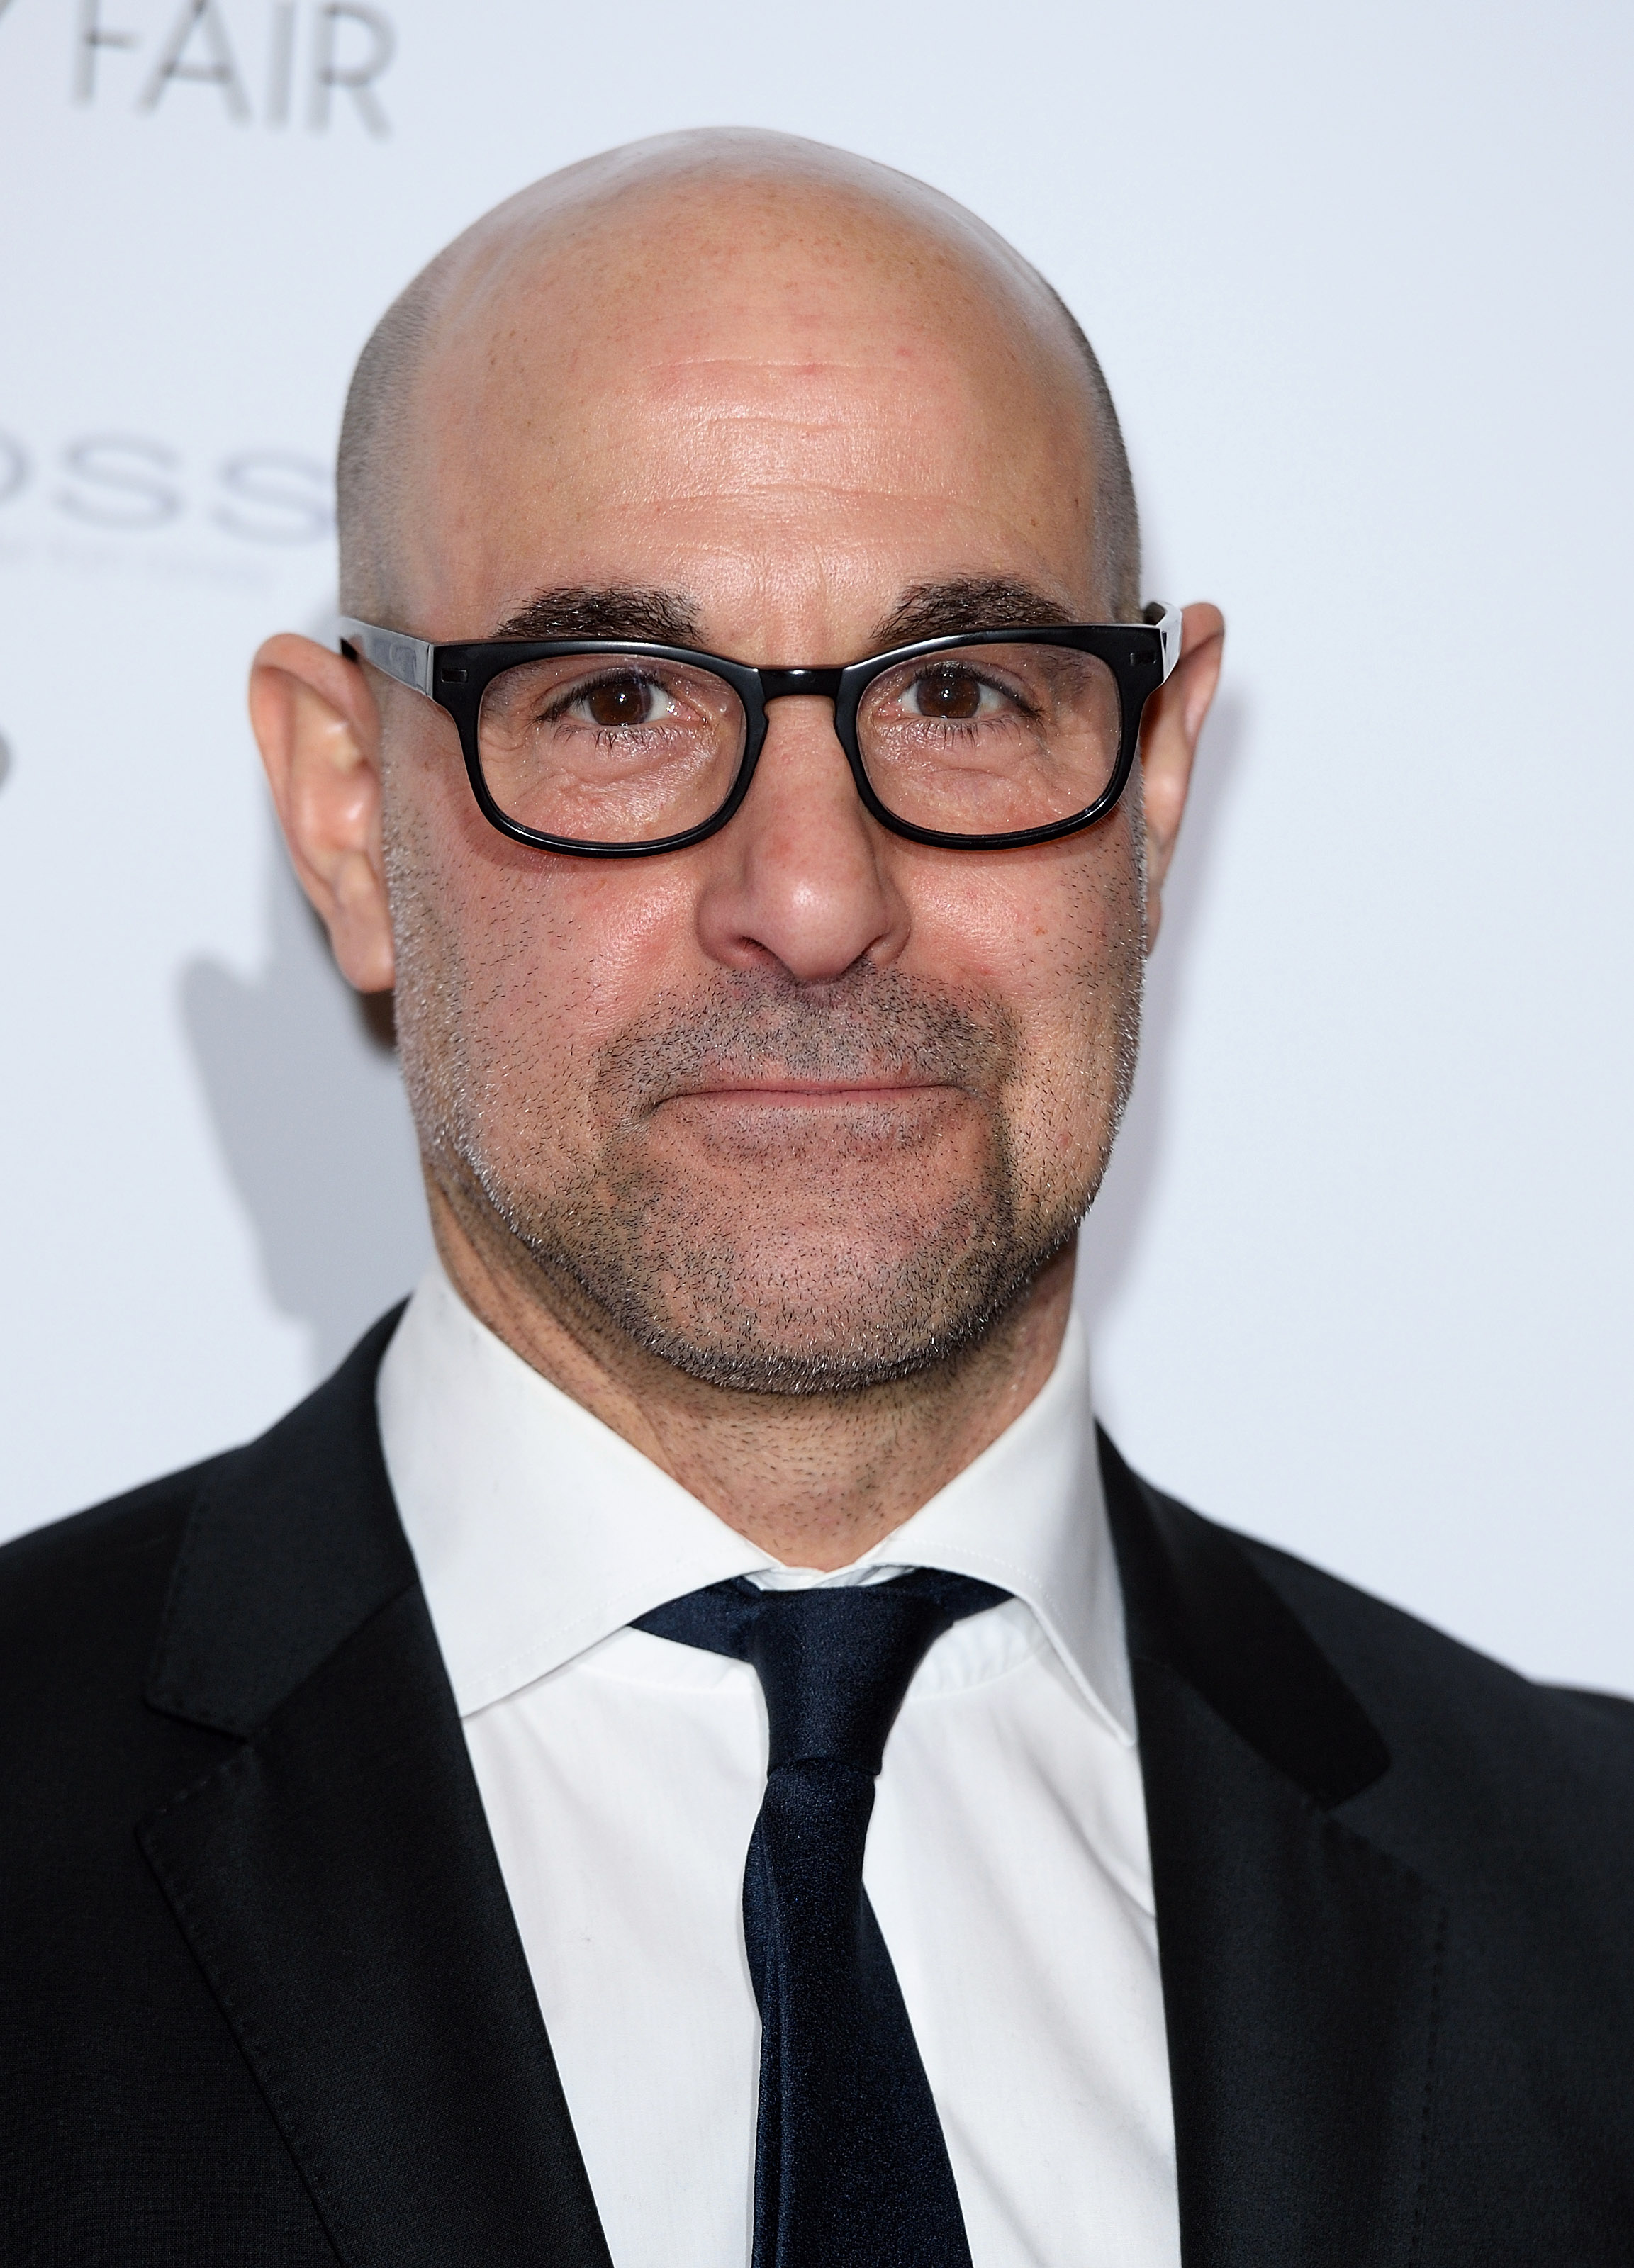 Stanley Tucci attends the London Critics' Circle Film Awards on January 18, 2015.